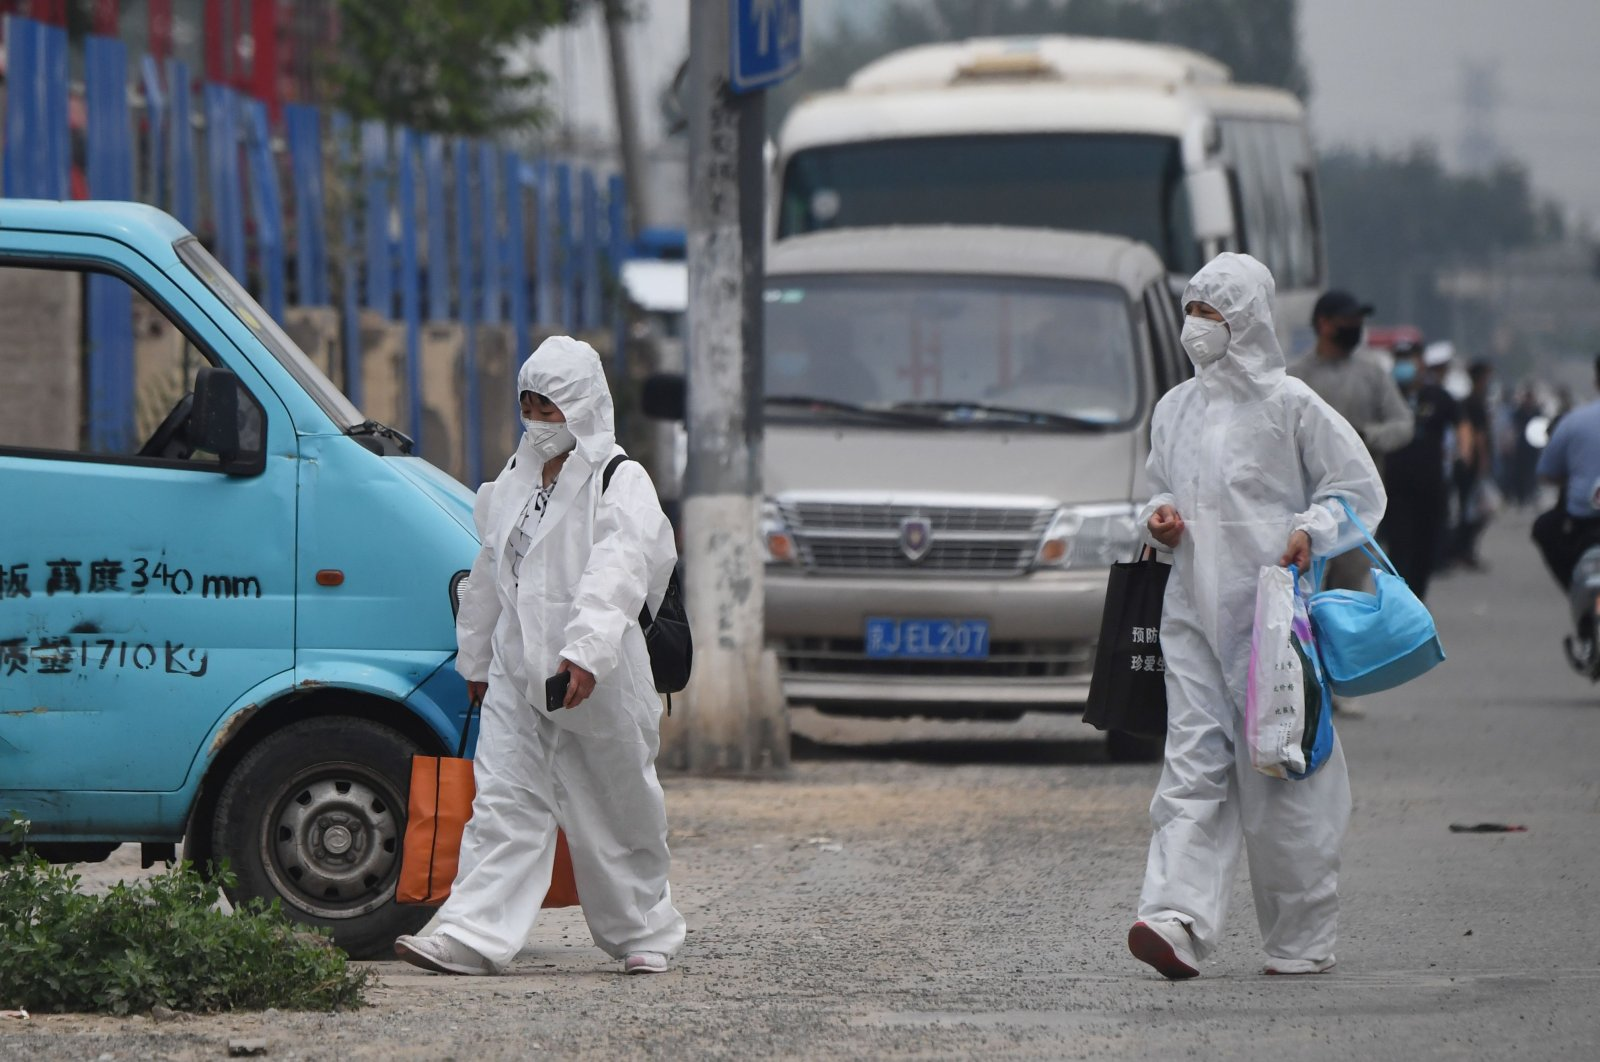 Two women wear protective suits as they walk on a street near the closed Xinfadi market in Beijing on June 13, 2020. (AFP Photo)